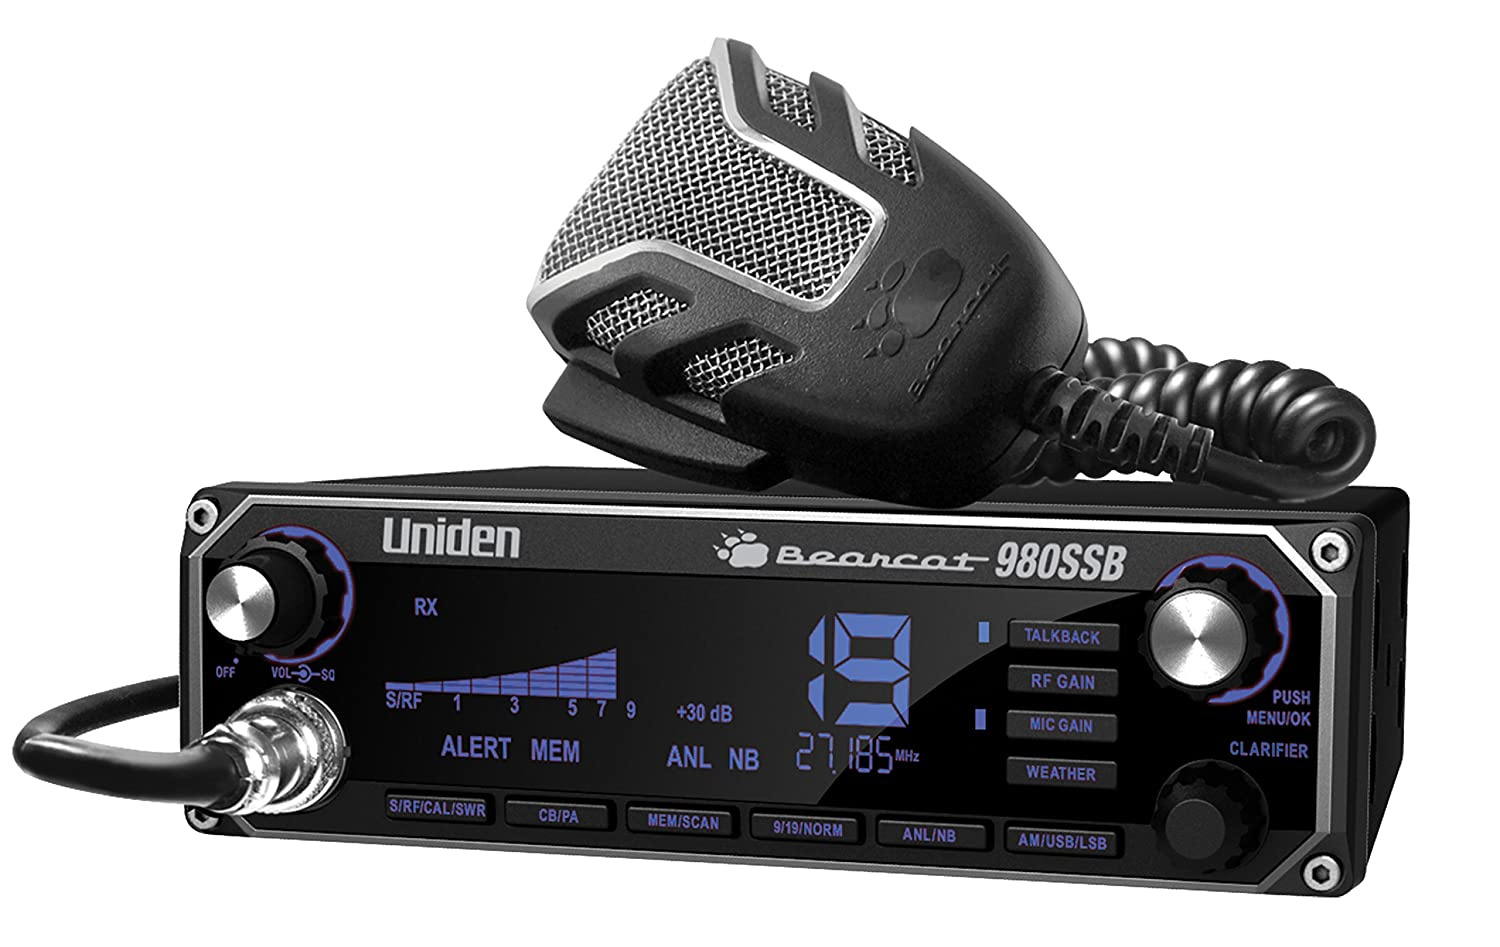 Uniden BEARCAT CB Radio With Sideband And WeatherBand (980SSB)